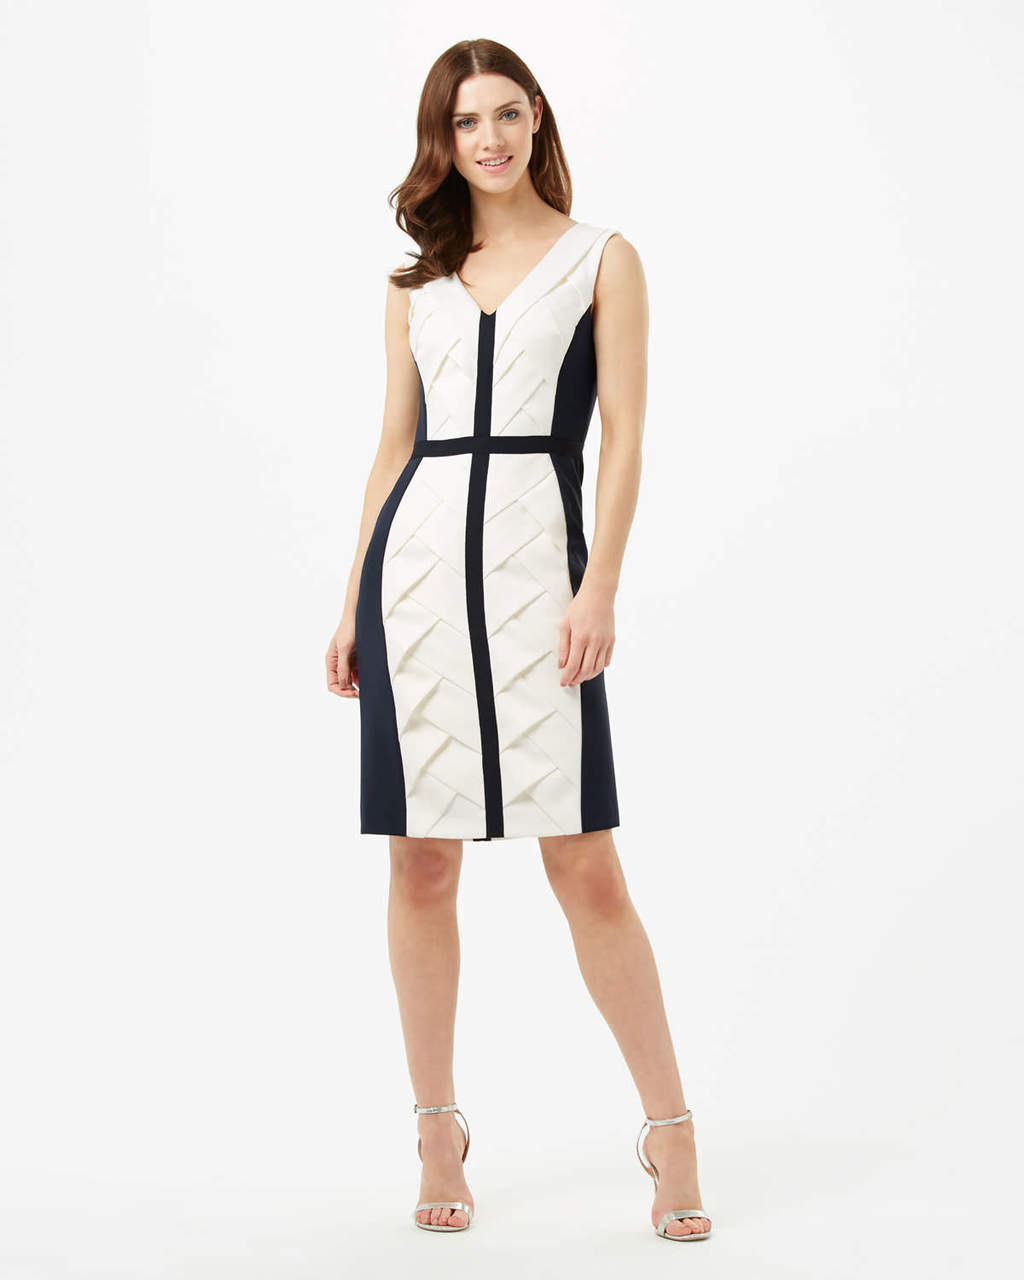 Carly Weave Dress - neckline: v-neck; fit: tight; pattern: plain; sleeve style: sleeveless; style: bodycon; predominant colour: ivory/cream; secondary colour: black; occasions: evening; length: on the knee; fibres: polyester/polyamide - 100%; sleeve length: sleeveless; texture group: jersey - clingy; pattern type: fabric; multicoloured: multicoloured; season: s/s 2016; wardrobe: event